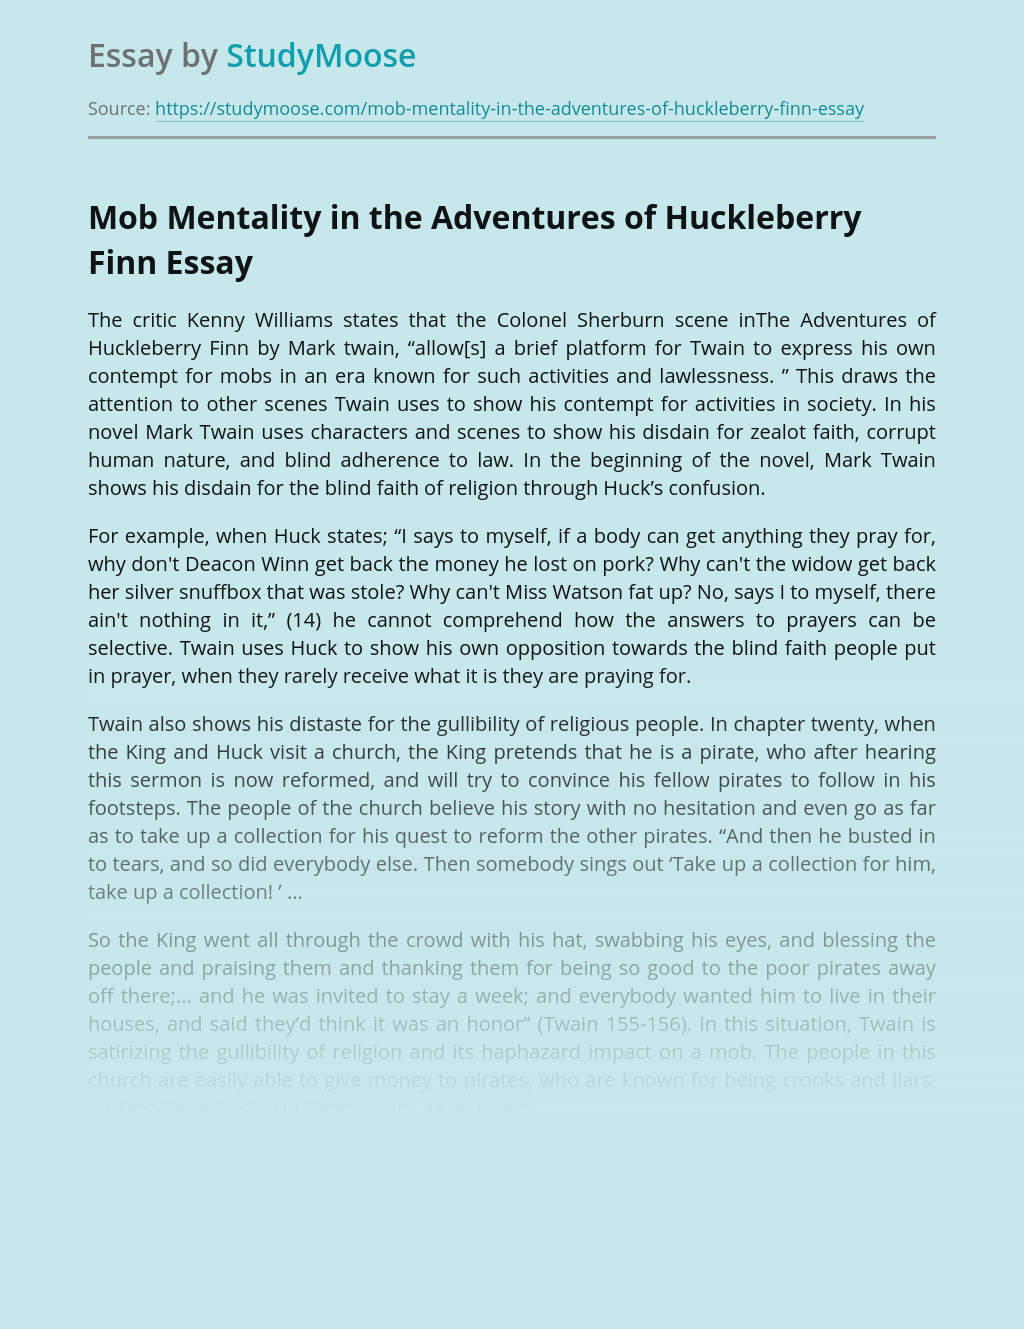 Mob Mentality in the Adventures of Huckleberry Finn